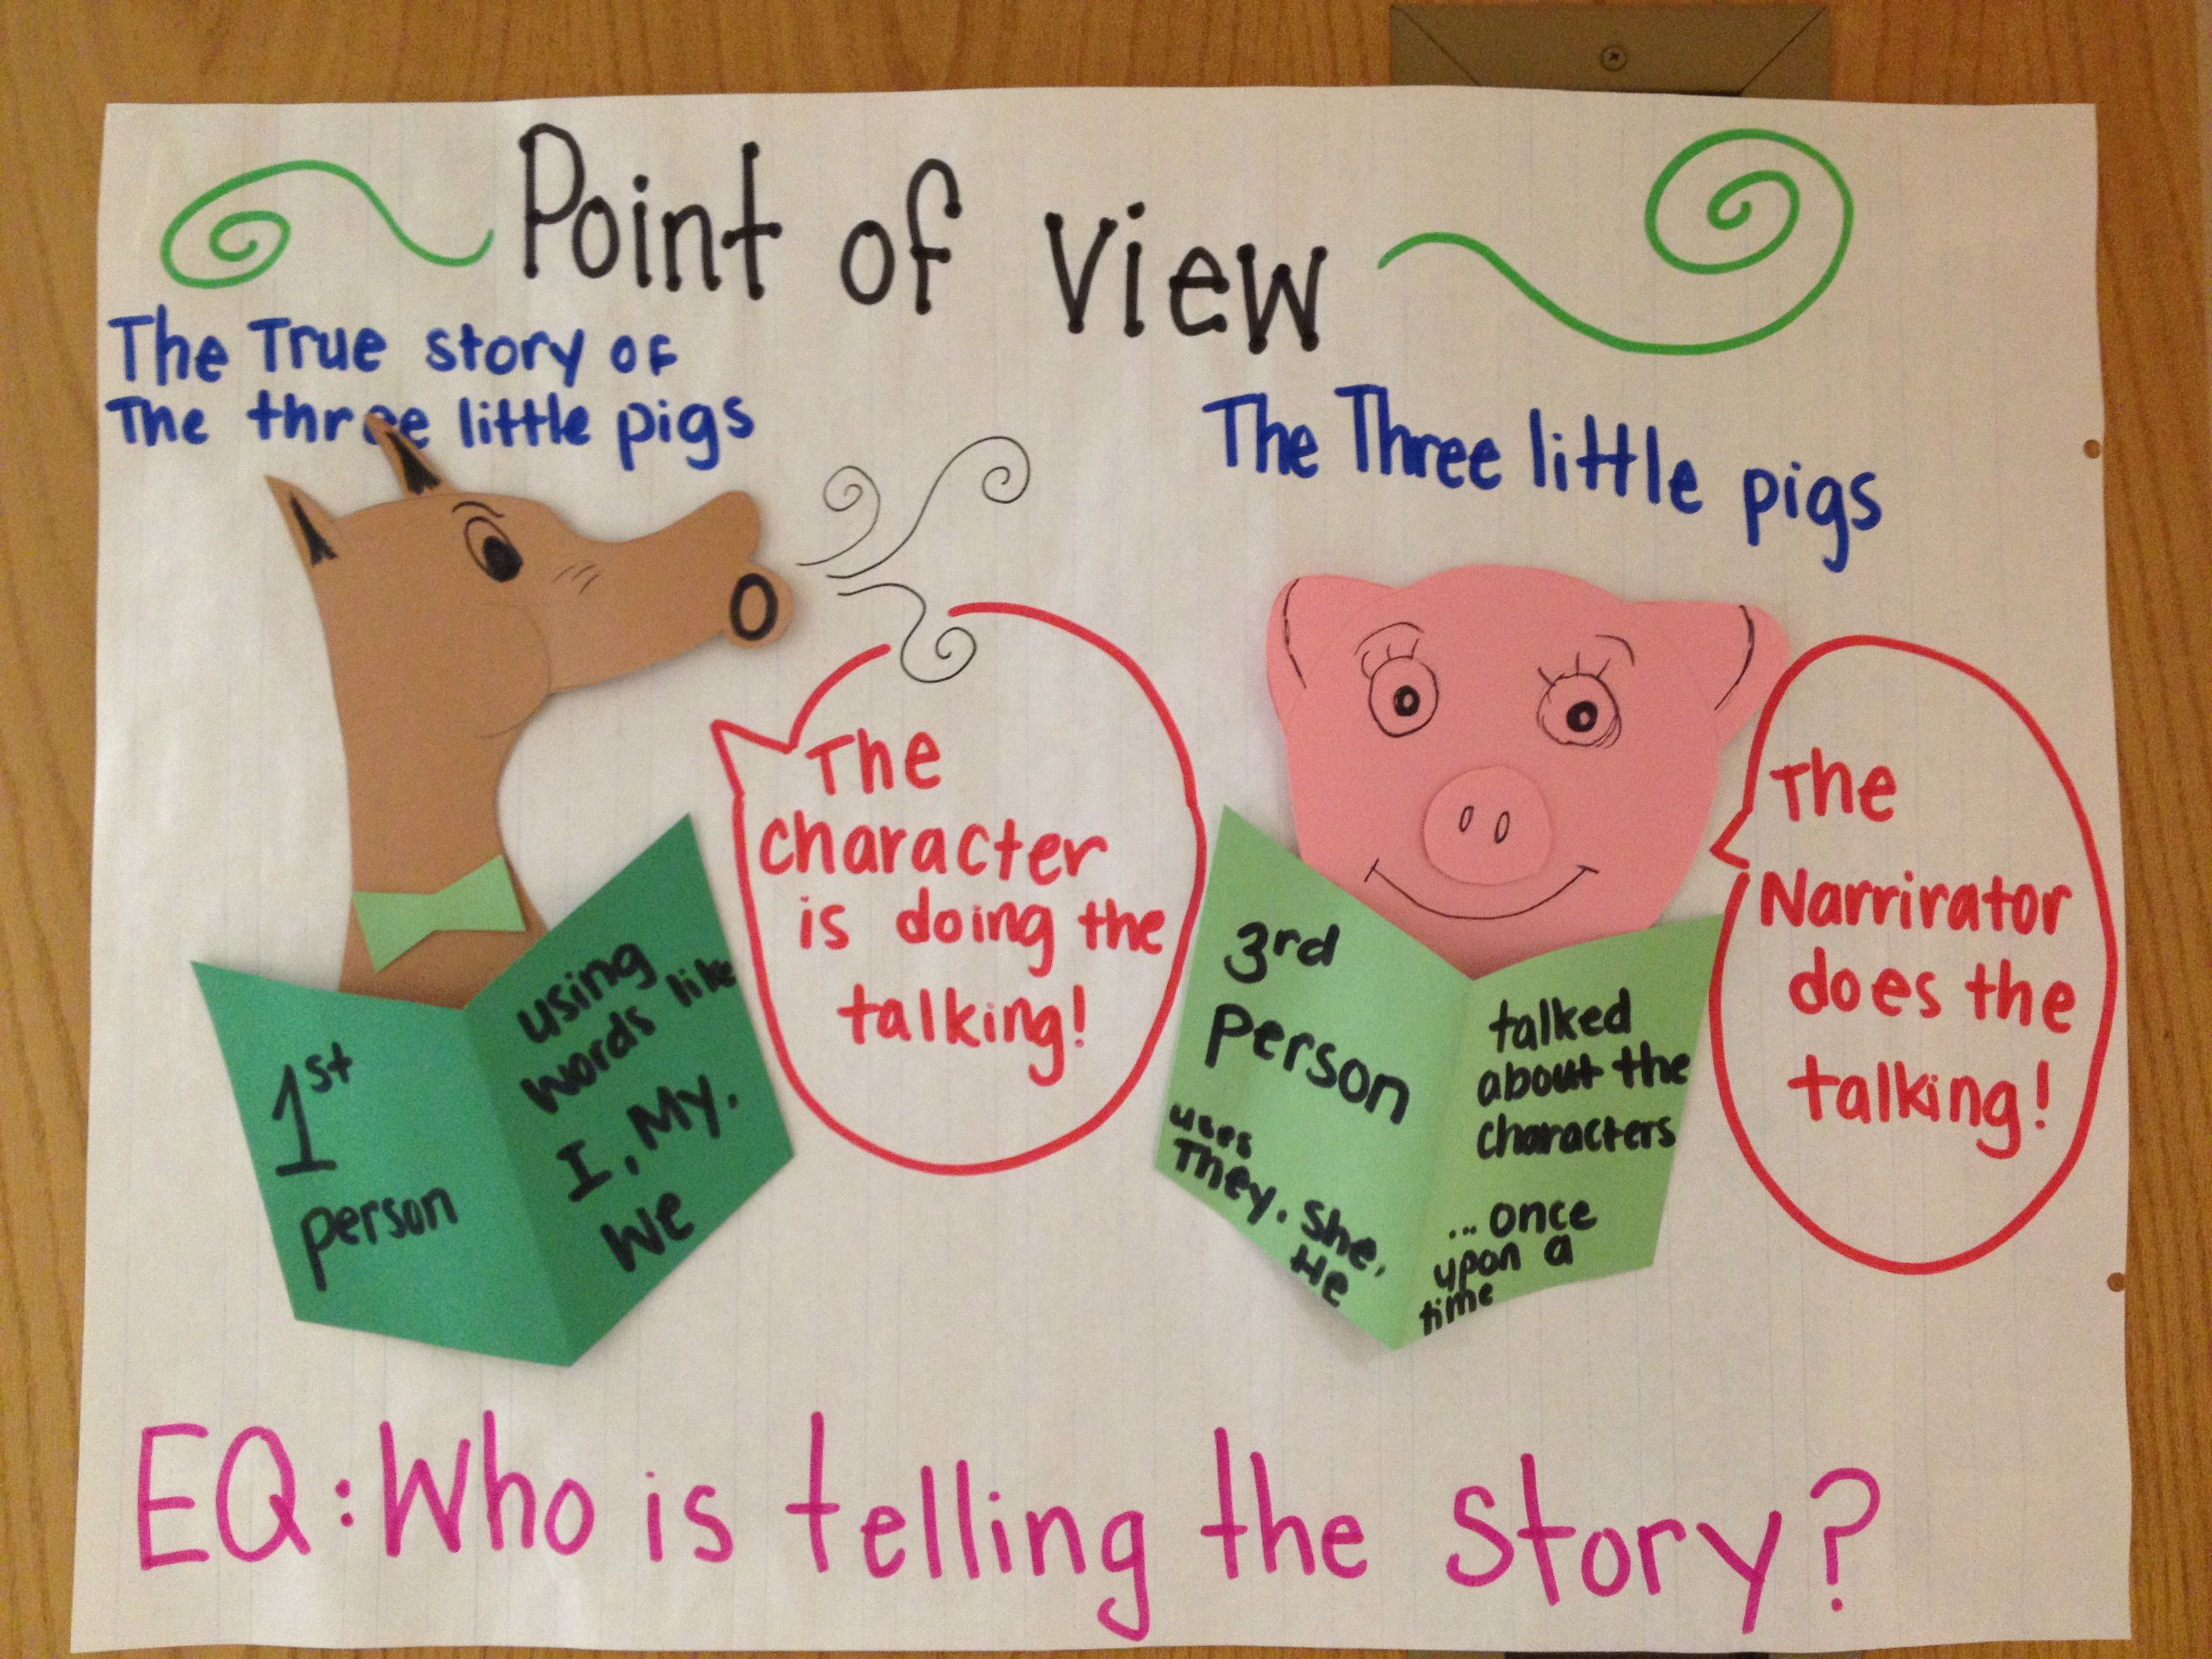 medium resolution of point of view the three little pigs and the true story of the three little pigs